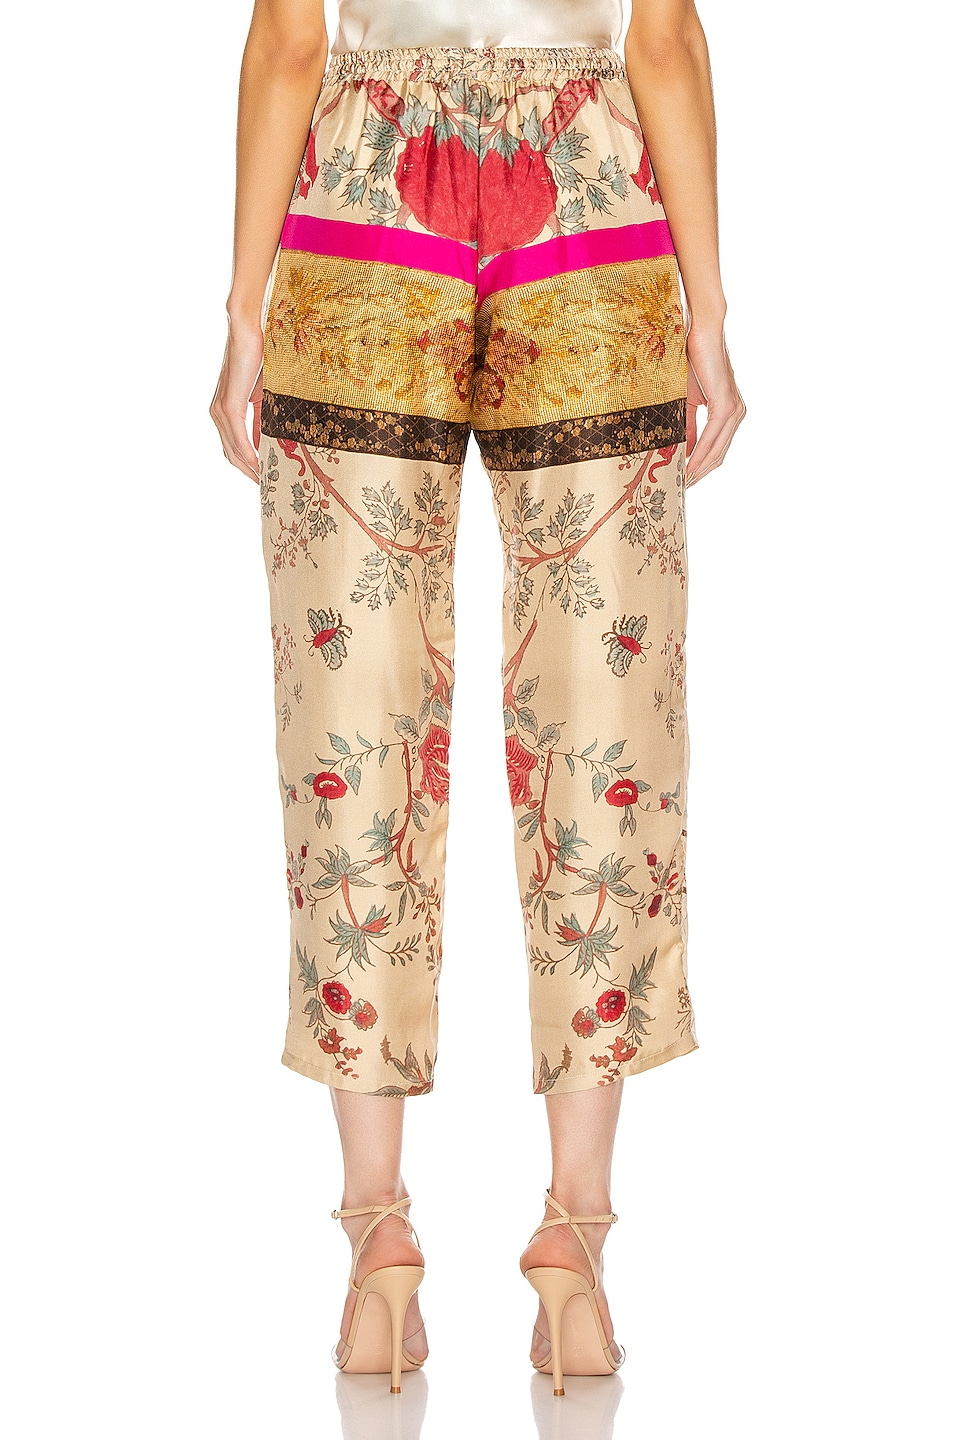 Image 4 of Pierre-Louis Mascia Alow Ultrawash Pant in Multi